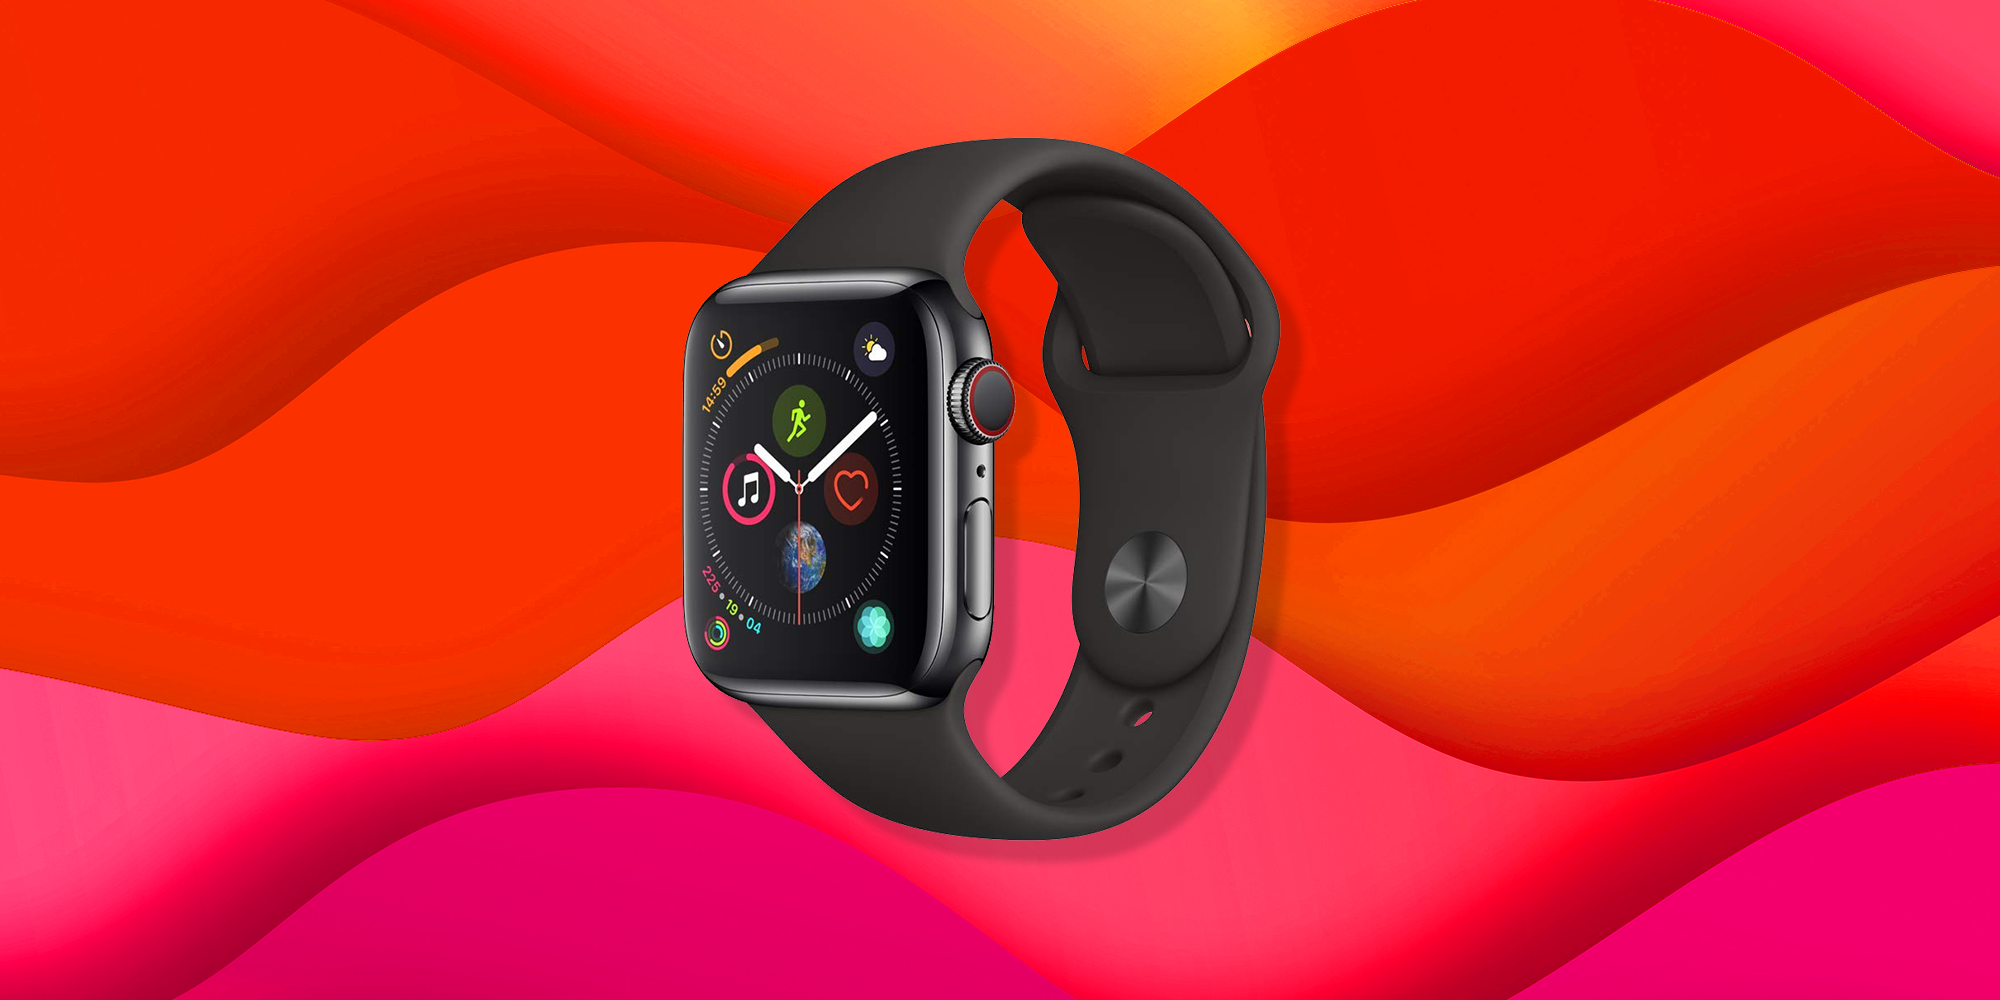 The Apple Watch Series 4 Is On Sale After The Announcement Of The New Series 5 Smartwatch